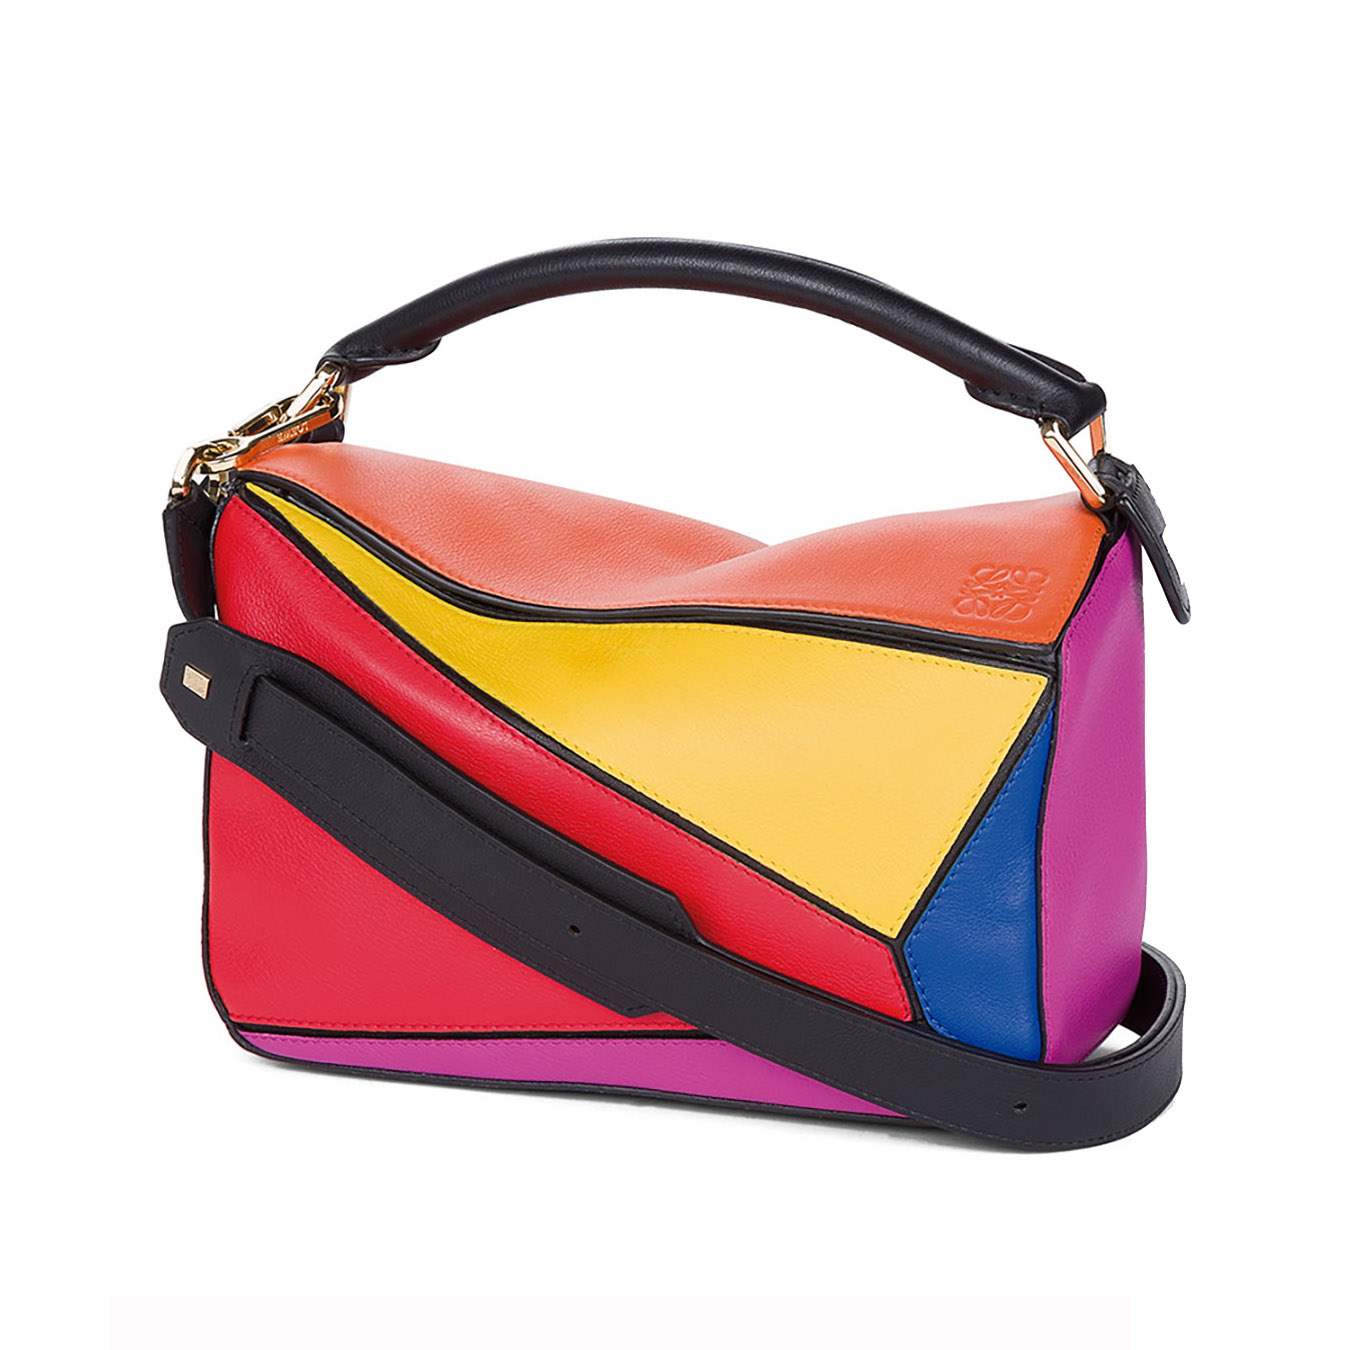 824700ca86cc1e Trend to try: 5 candy-coloured bags for spring